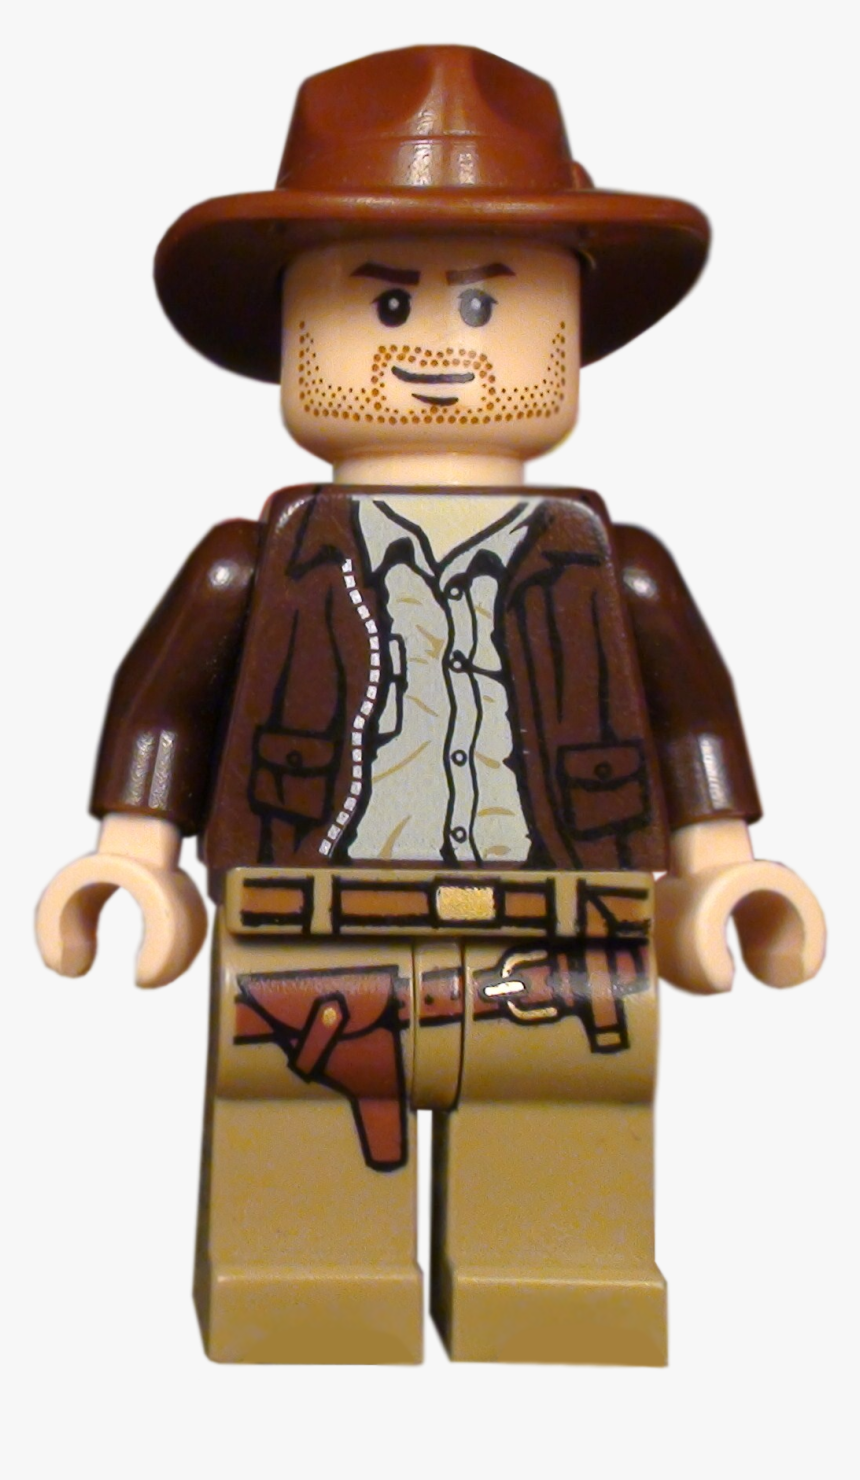 Indiana Jones Lego Indiana Jones Png Transparent Png Transparent Png Image Pngitem